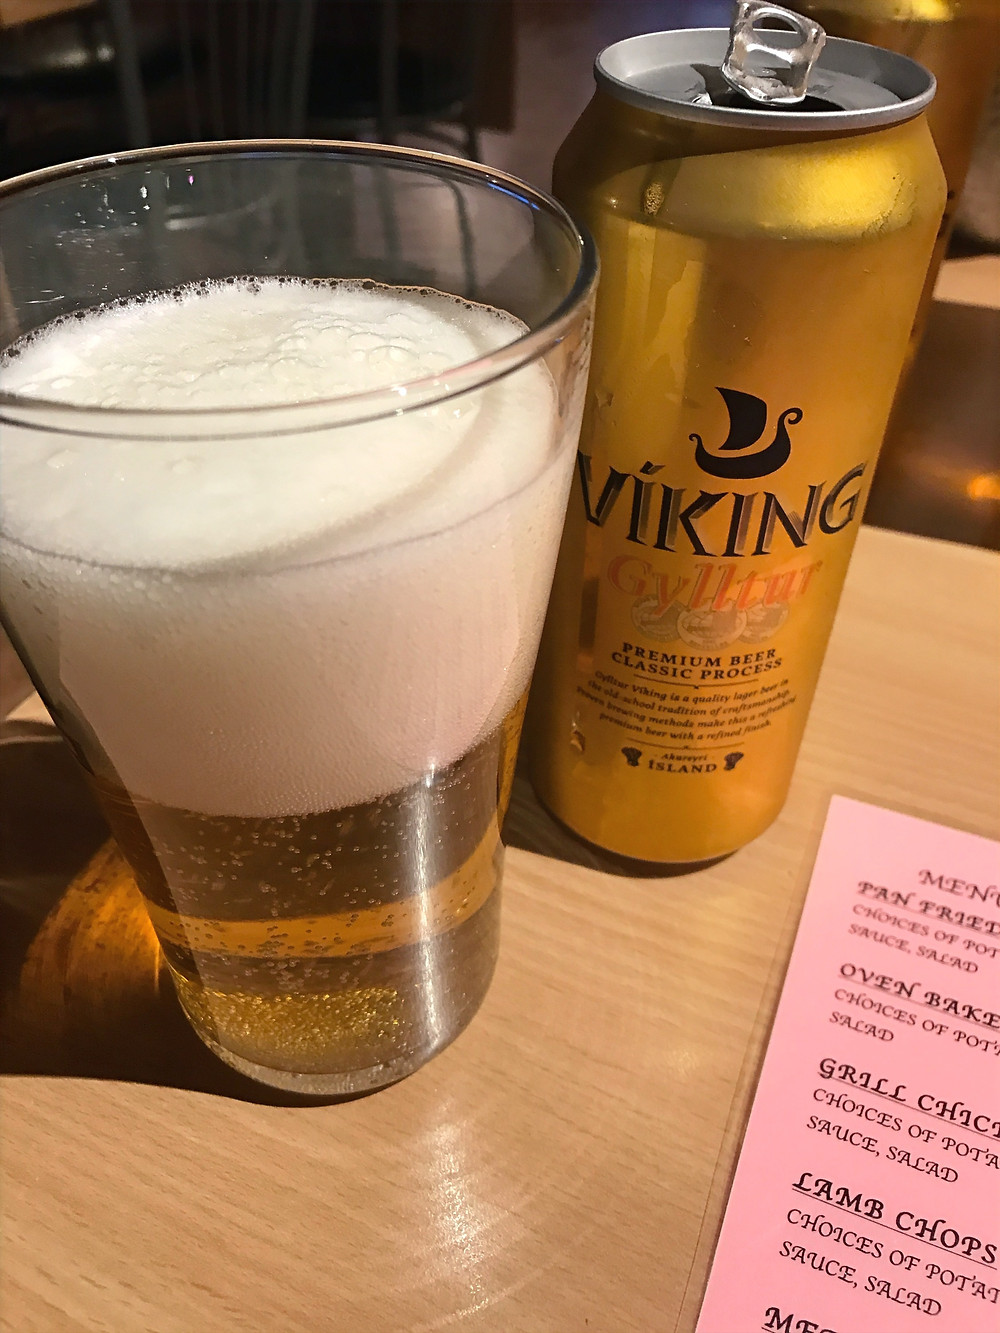 Trying Viking Beer